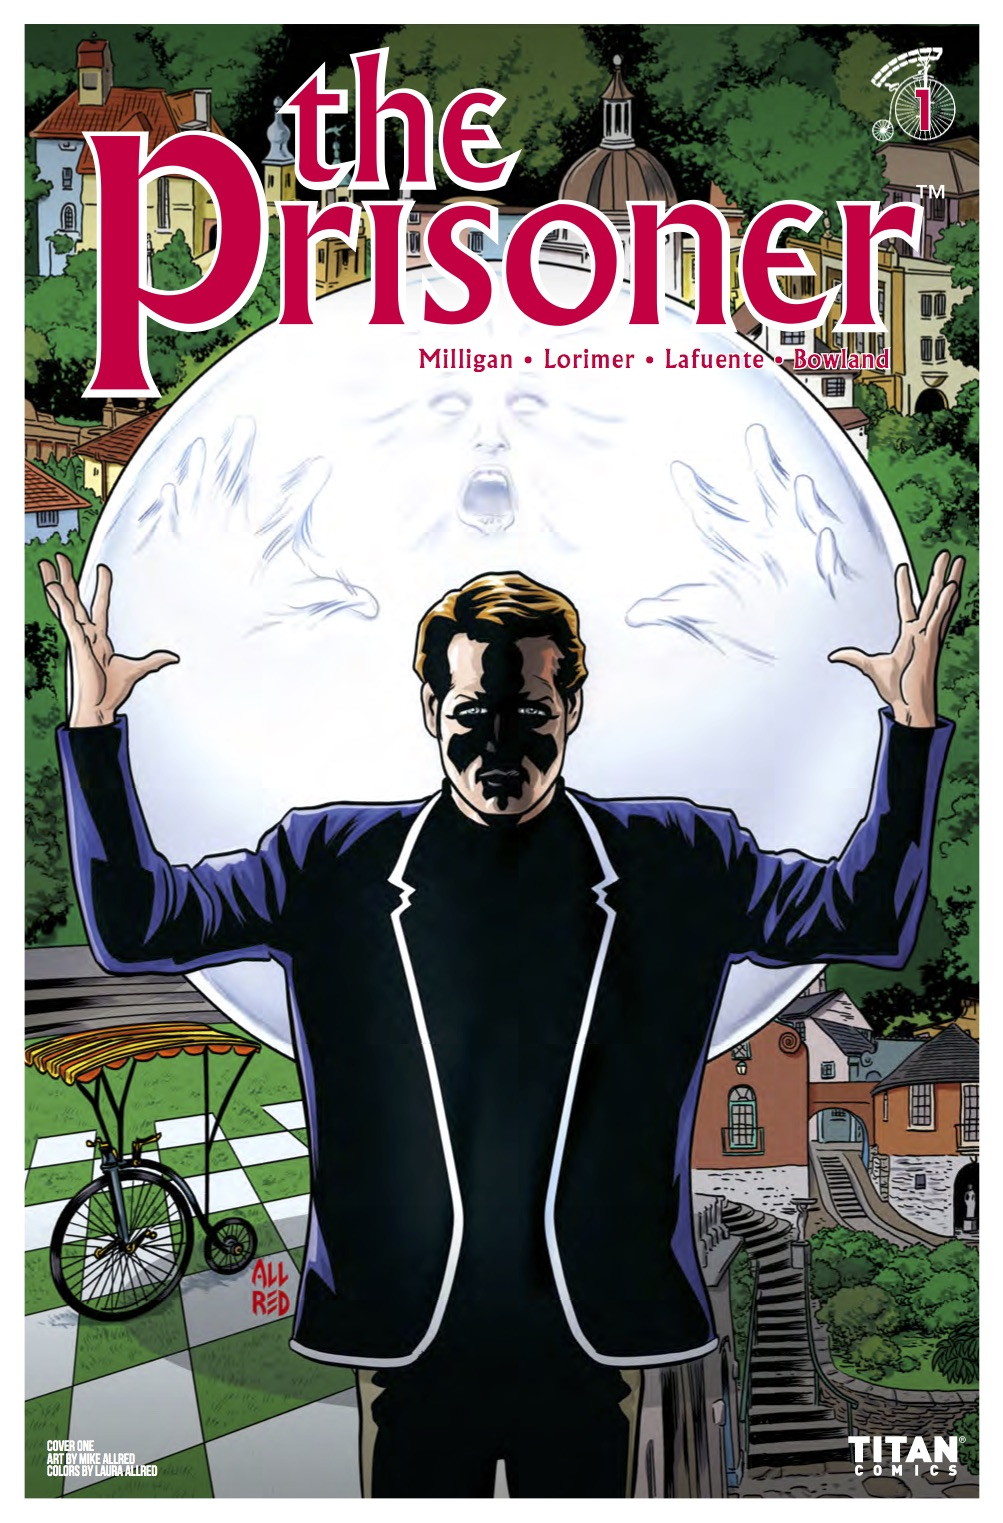 The Prisoner - Peter Milligan & Colin Lorimer (Titan Comics)